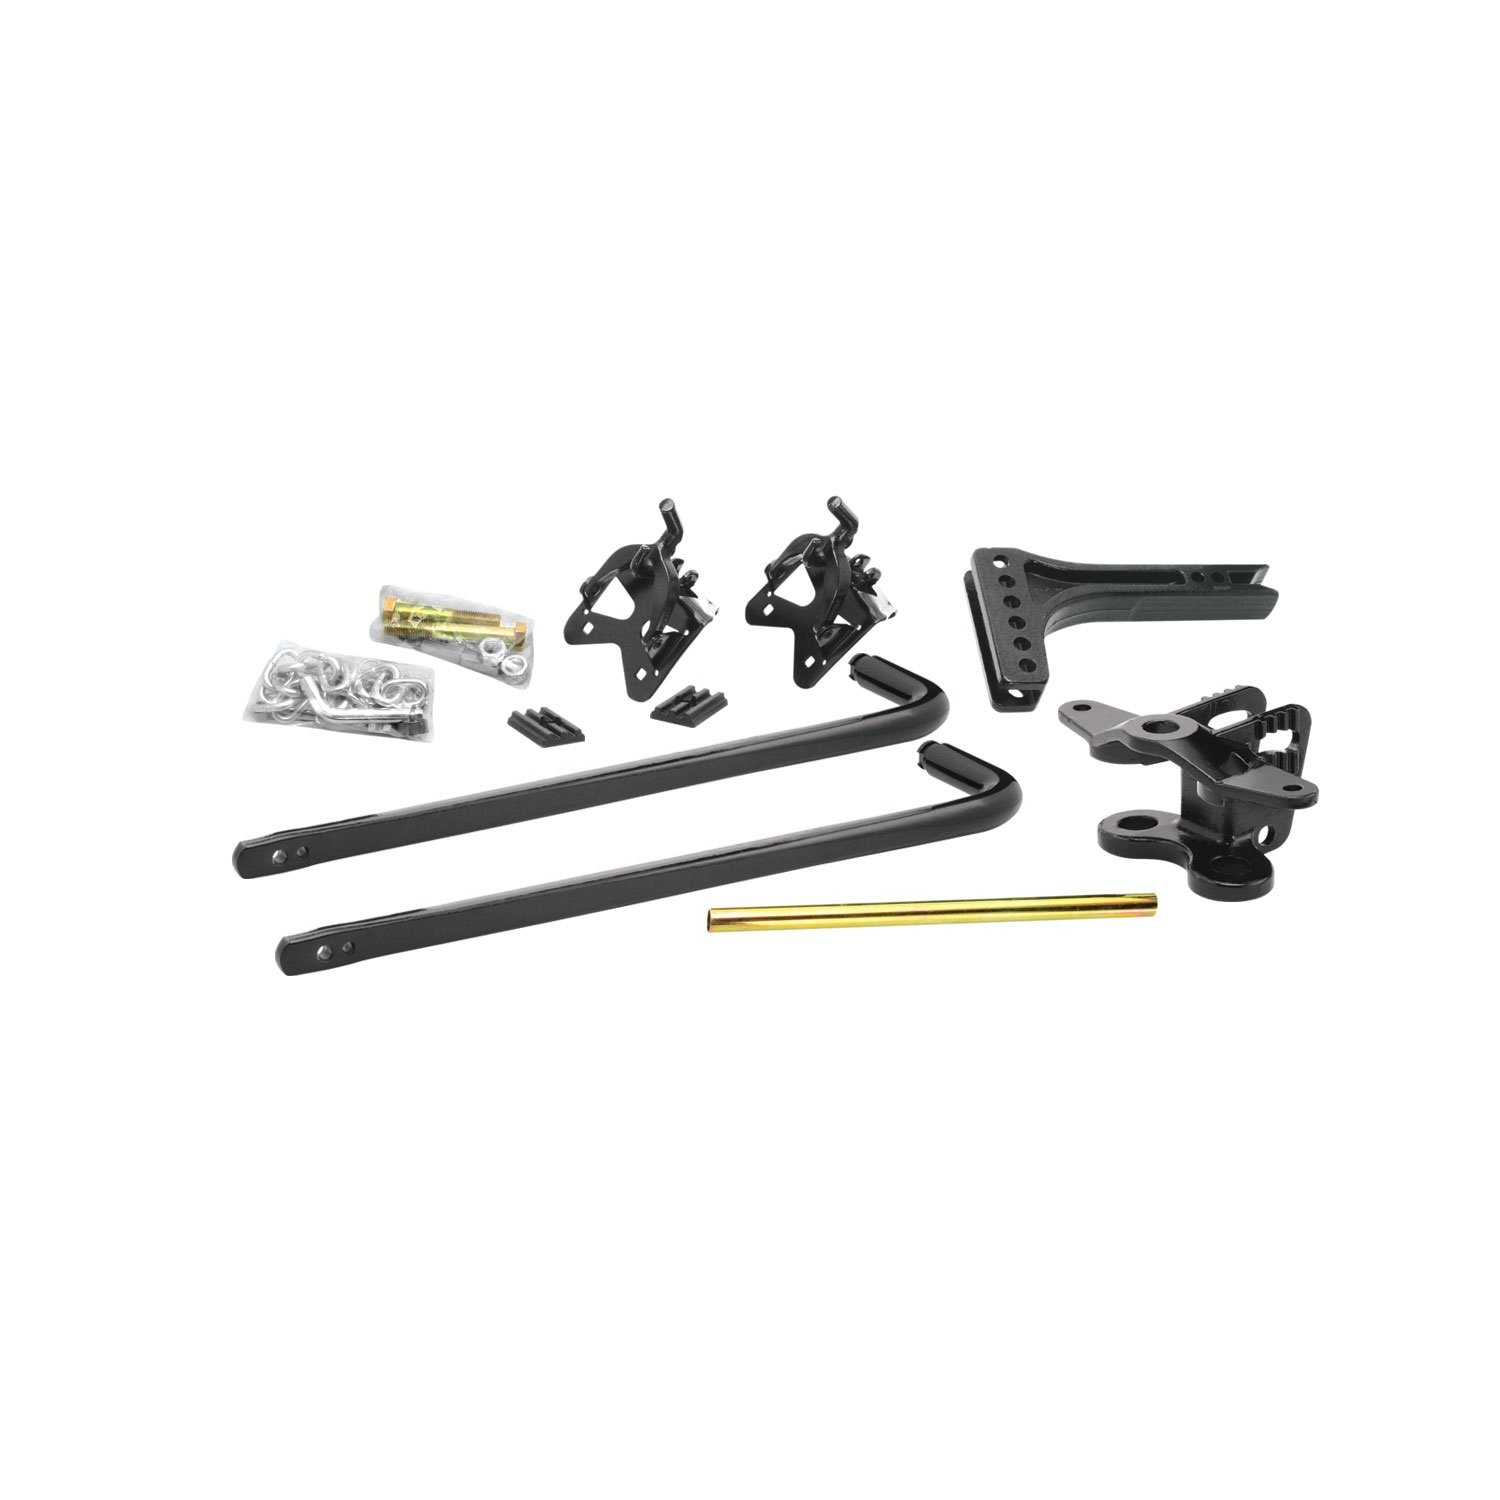 Pro Series 49570 Round Bar Weight Distributing Complete Kit Draw-Tite